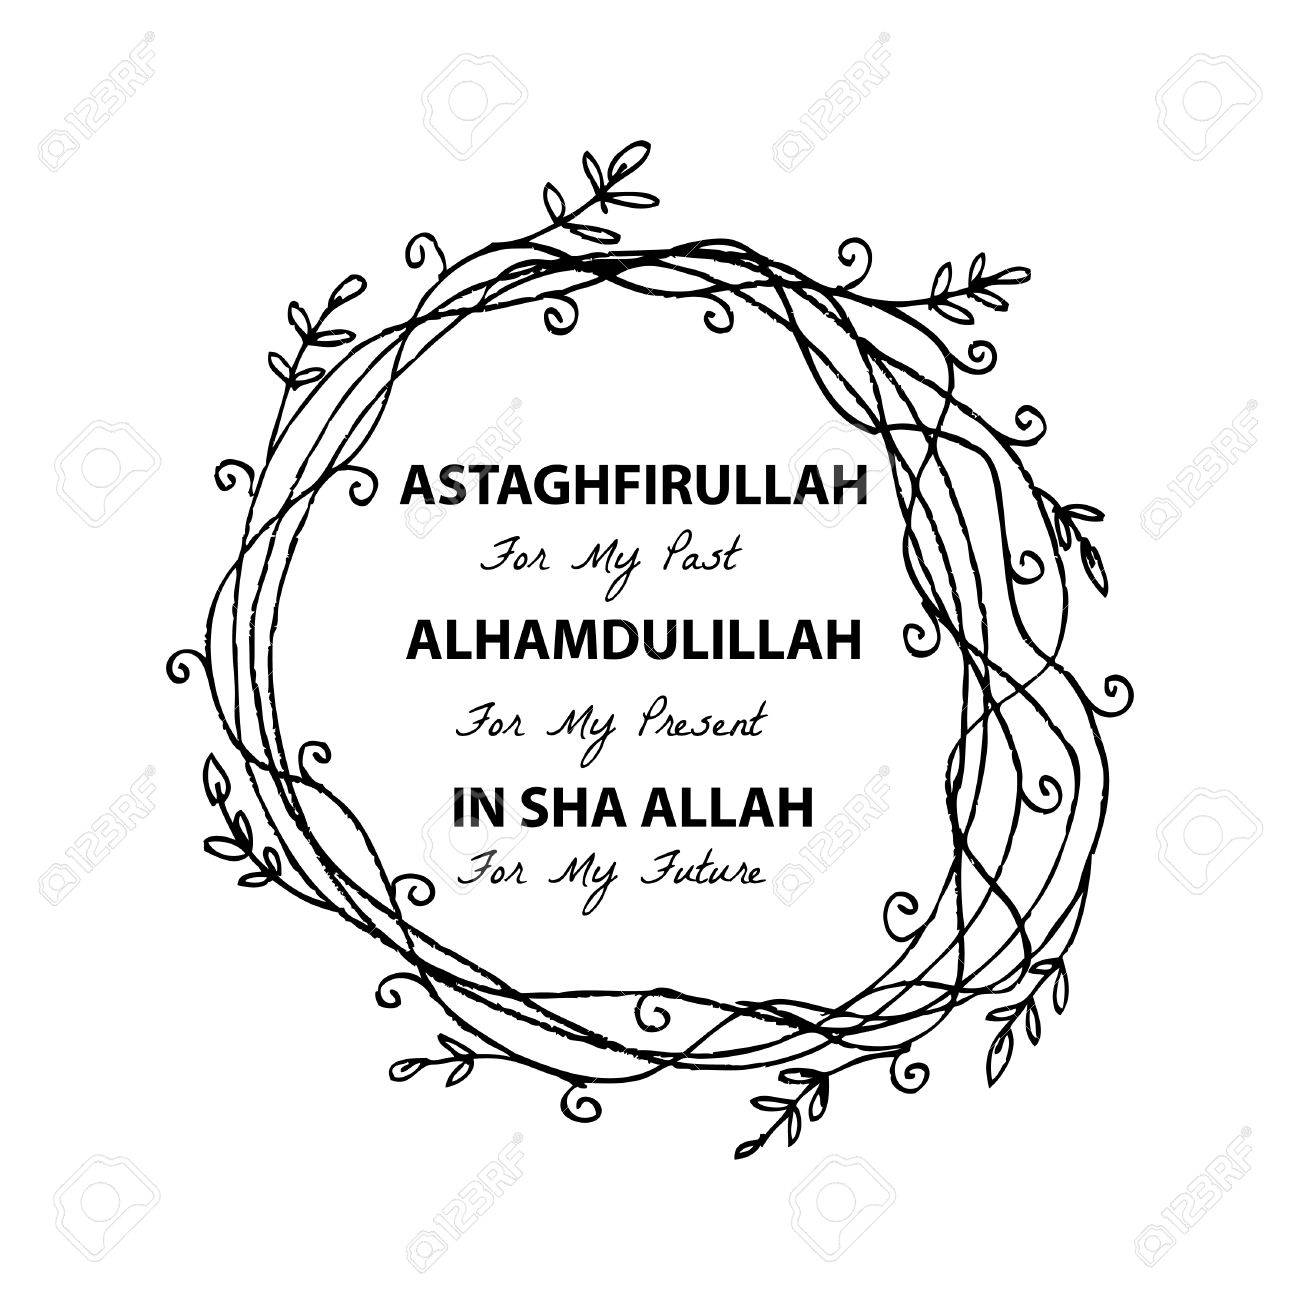 Astaghfirullah for the past alhamdulillah for the present in astaghfirullah for the past alhamdulillah for the present in sha allah for the future altavistaventures Images